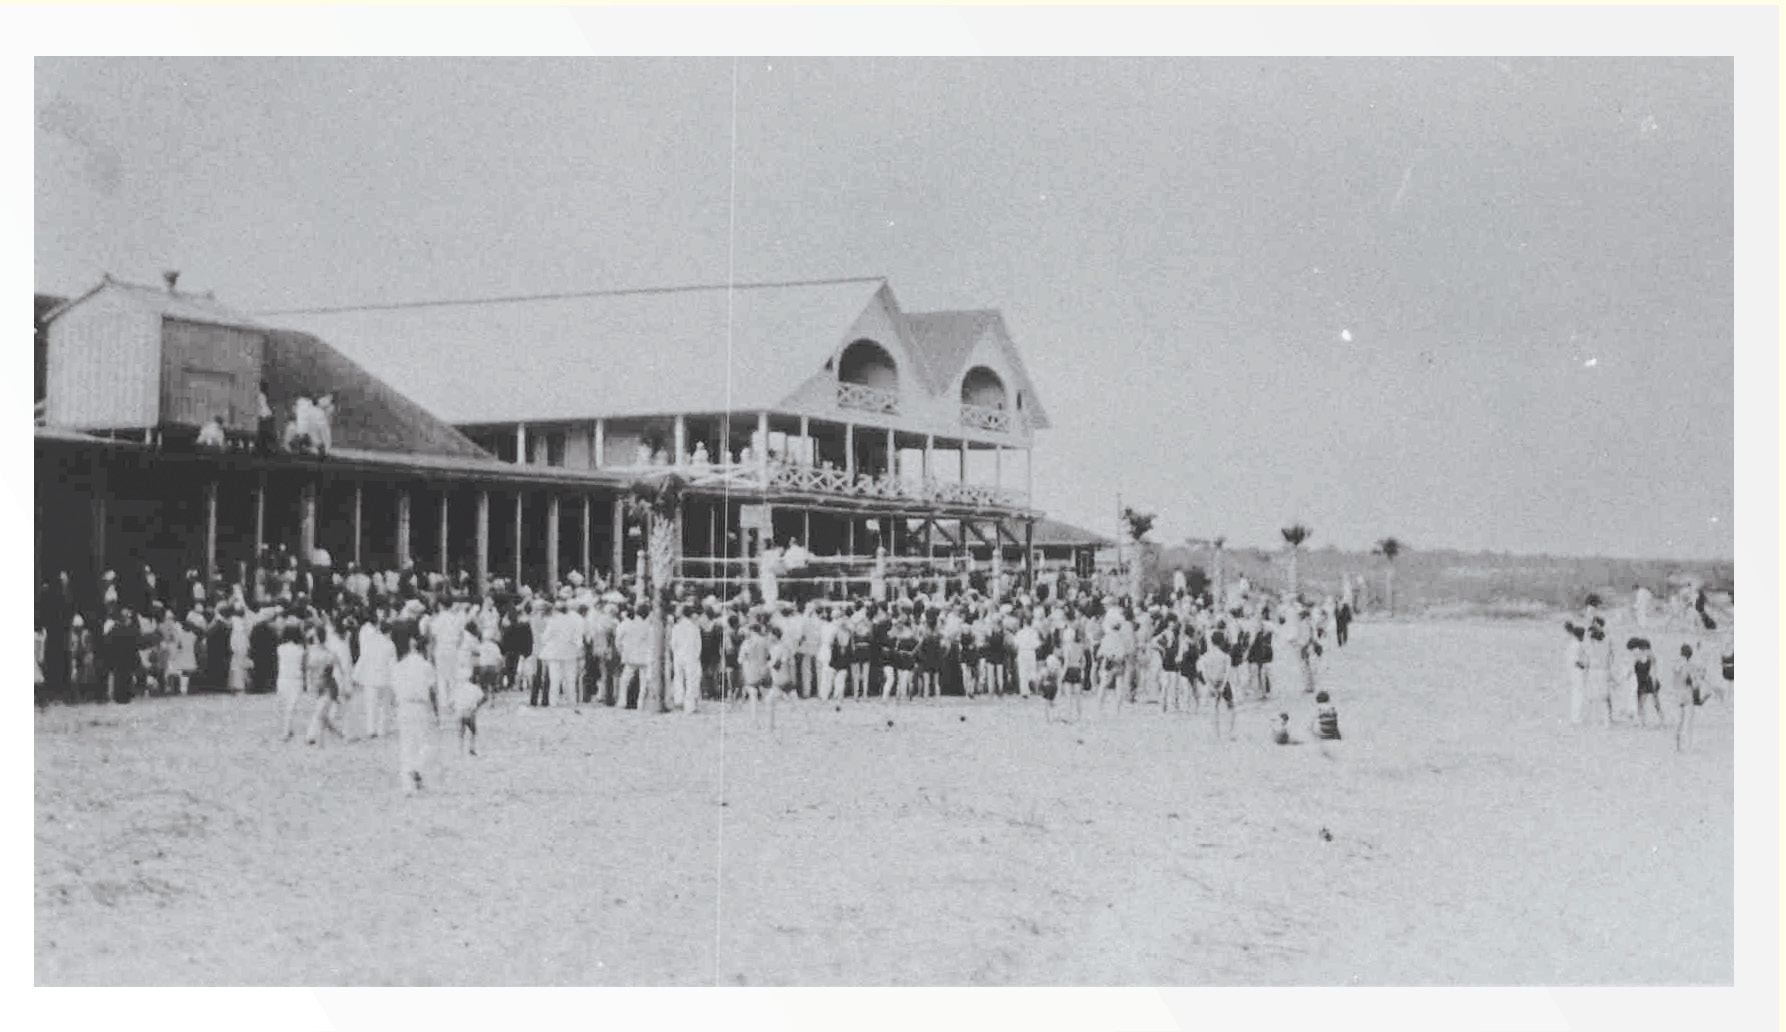 Activity on the Isle of Palms shore centered around three beachfront pavilions, anchored by the fishing pier—the longest in the Carolinas in the 1950s.